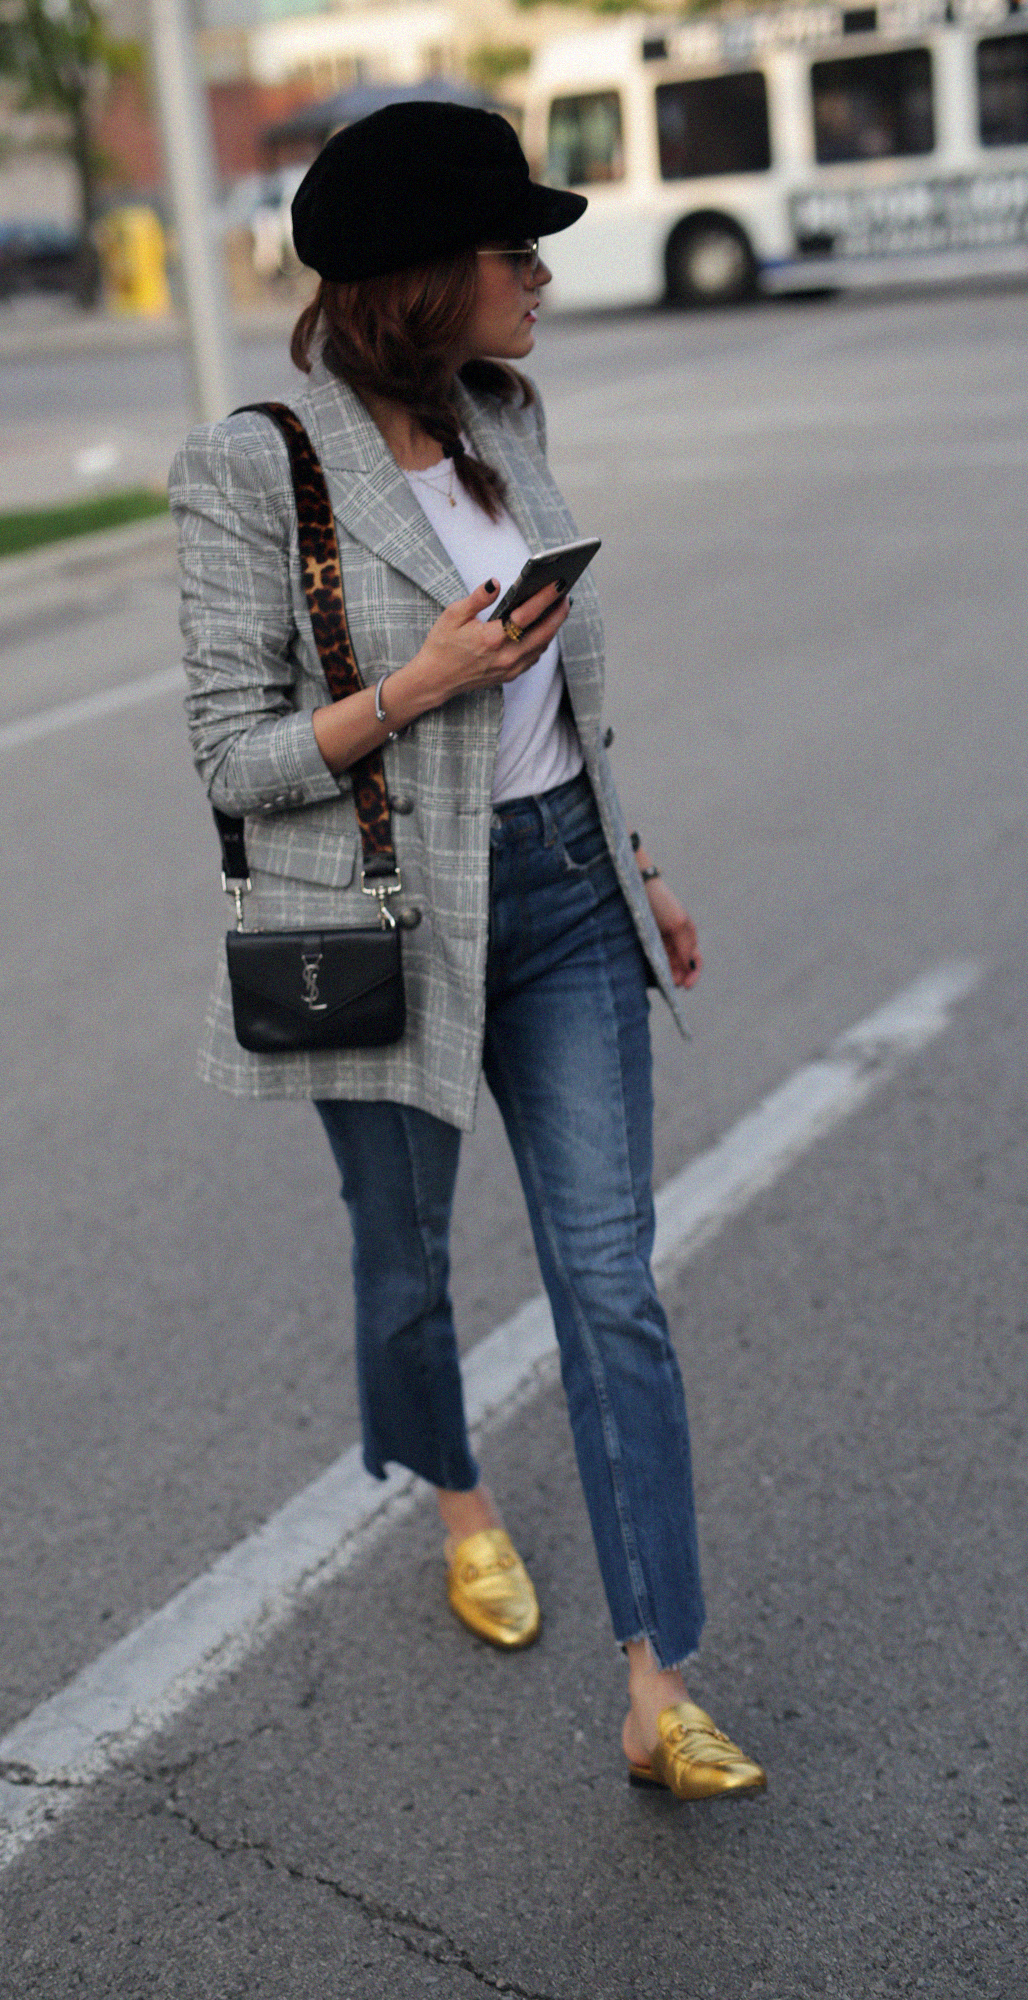 5 must have trends for fall 2017 - zara checkered blazer, gold gucci slippers, carrera bound sunlgasses, YSL crossbody bag, seam jeans_7986.jpg